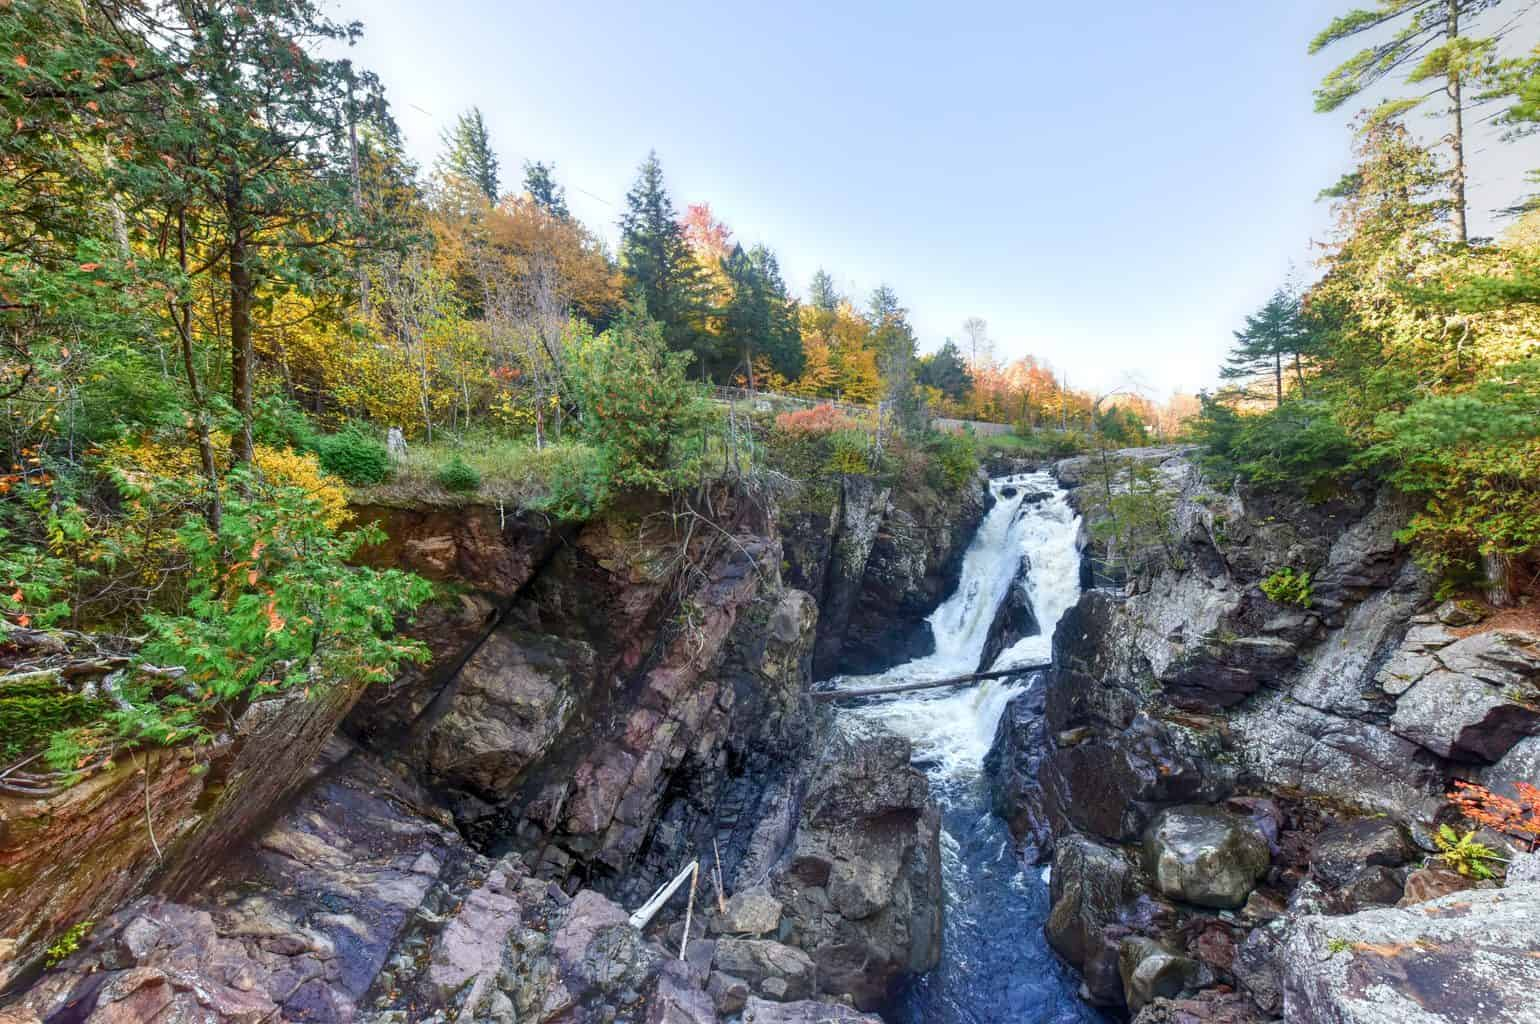 Adirondacks Peak Fall Foliage in upstate New York along the Ausable River and High Falls Gorge.